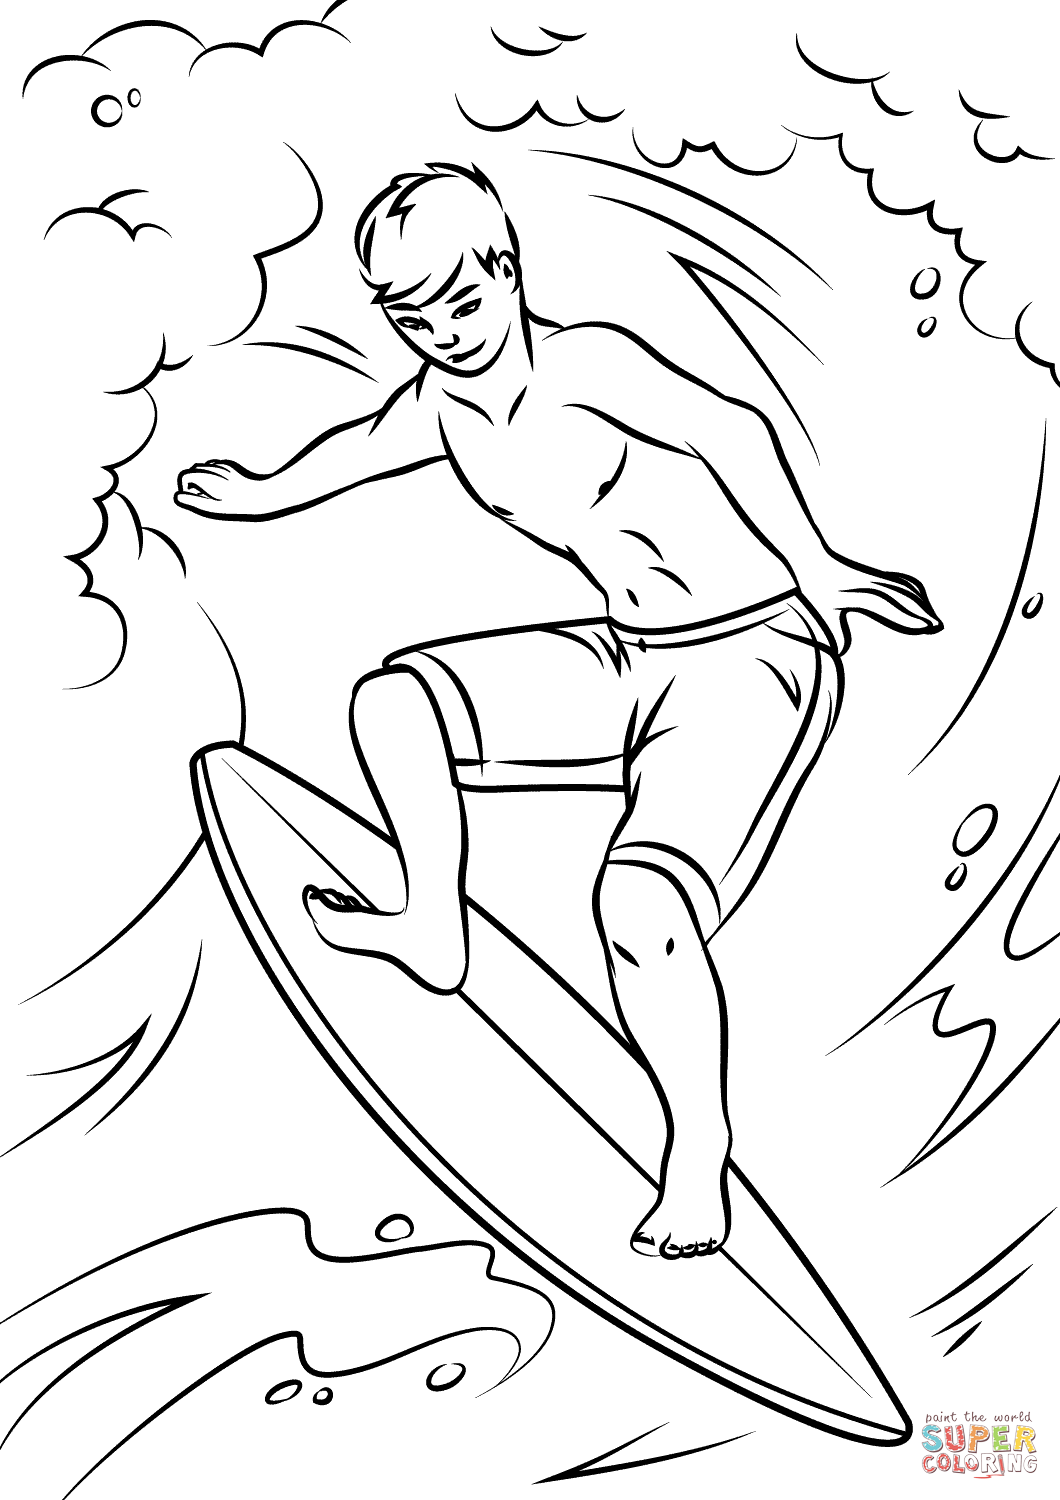 1060x1500 Riding The Waves Coloring Page